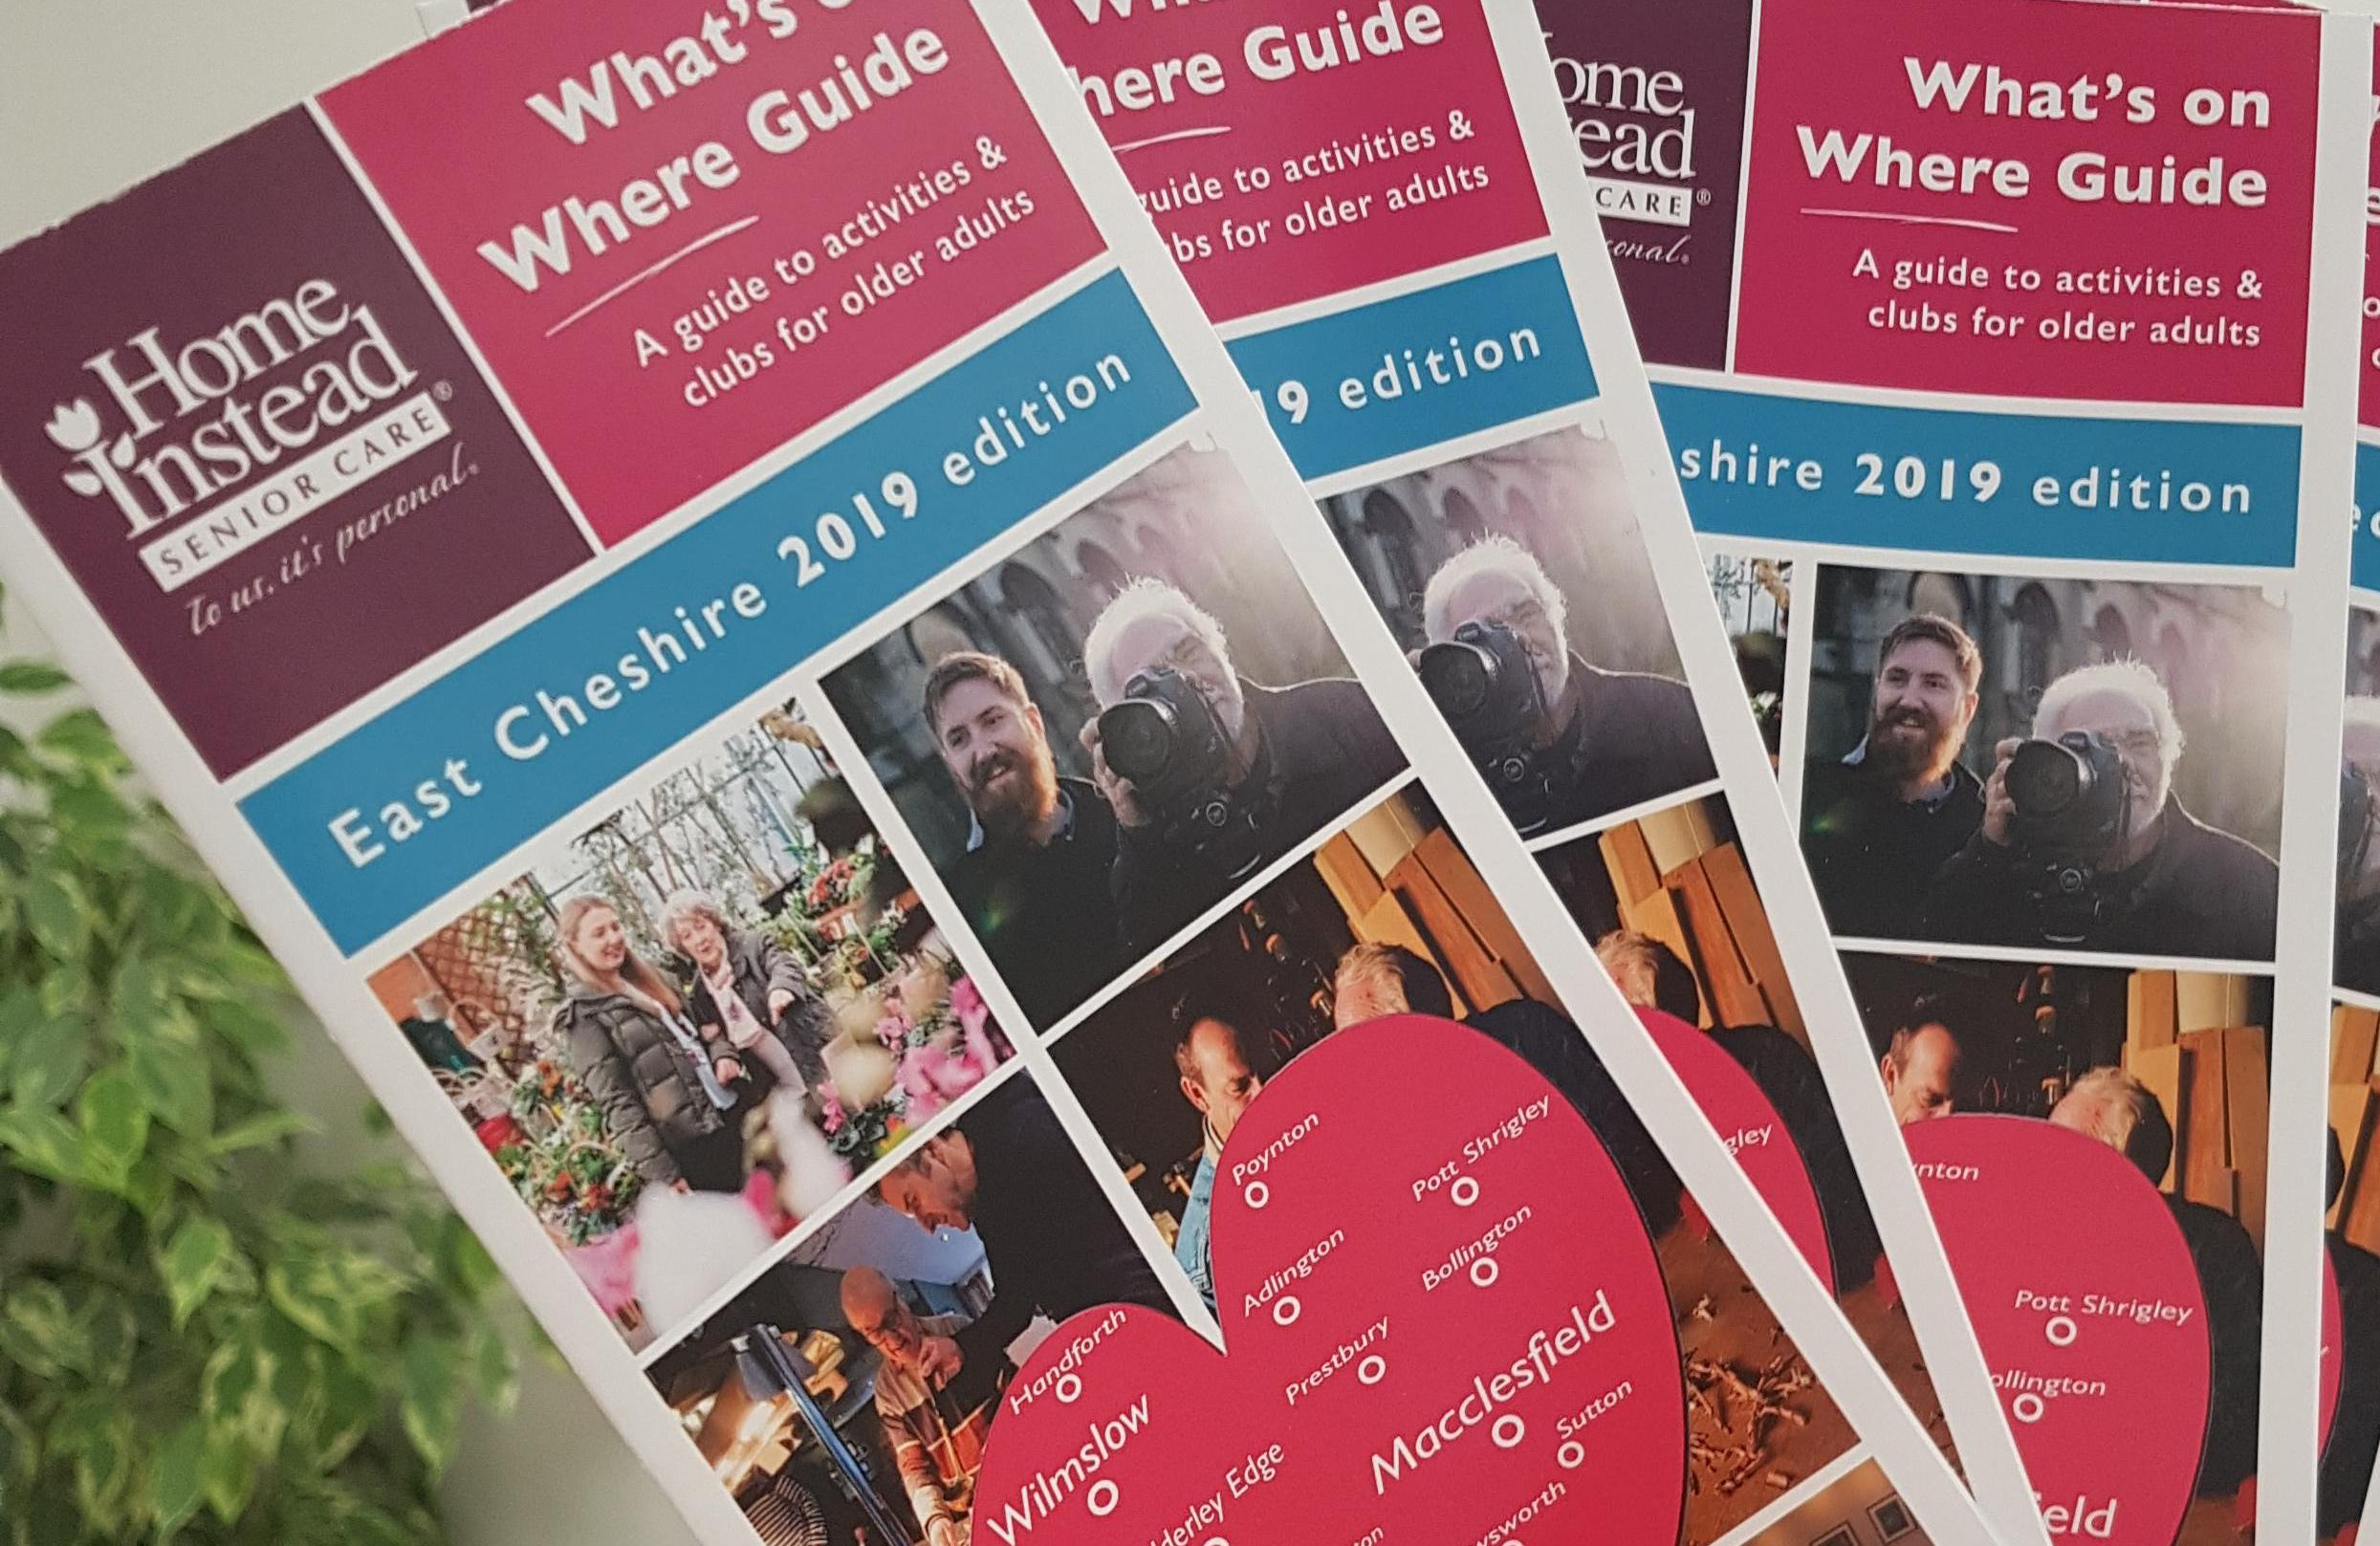 whats on where guide east cheshire wilmslow